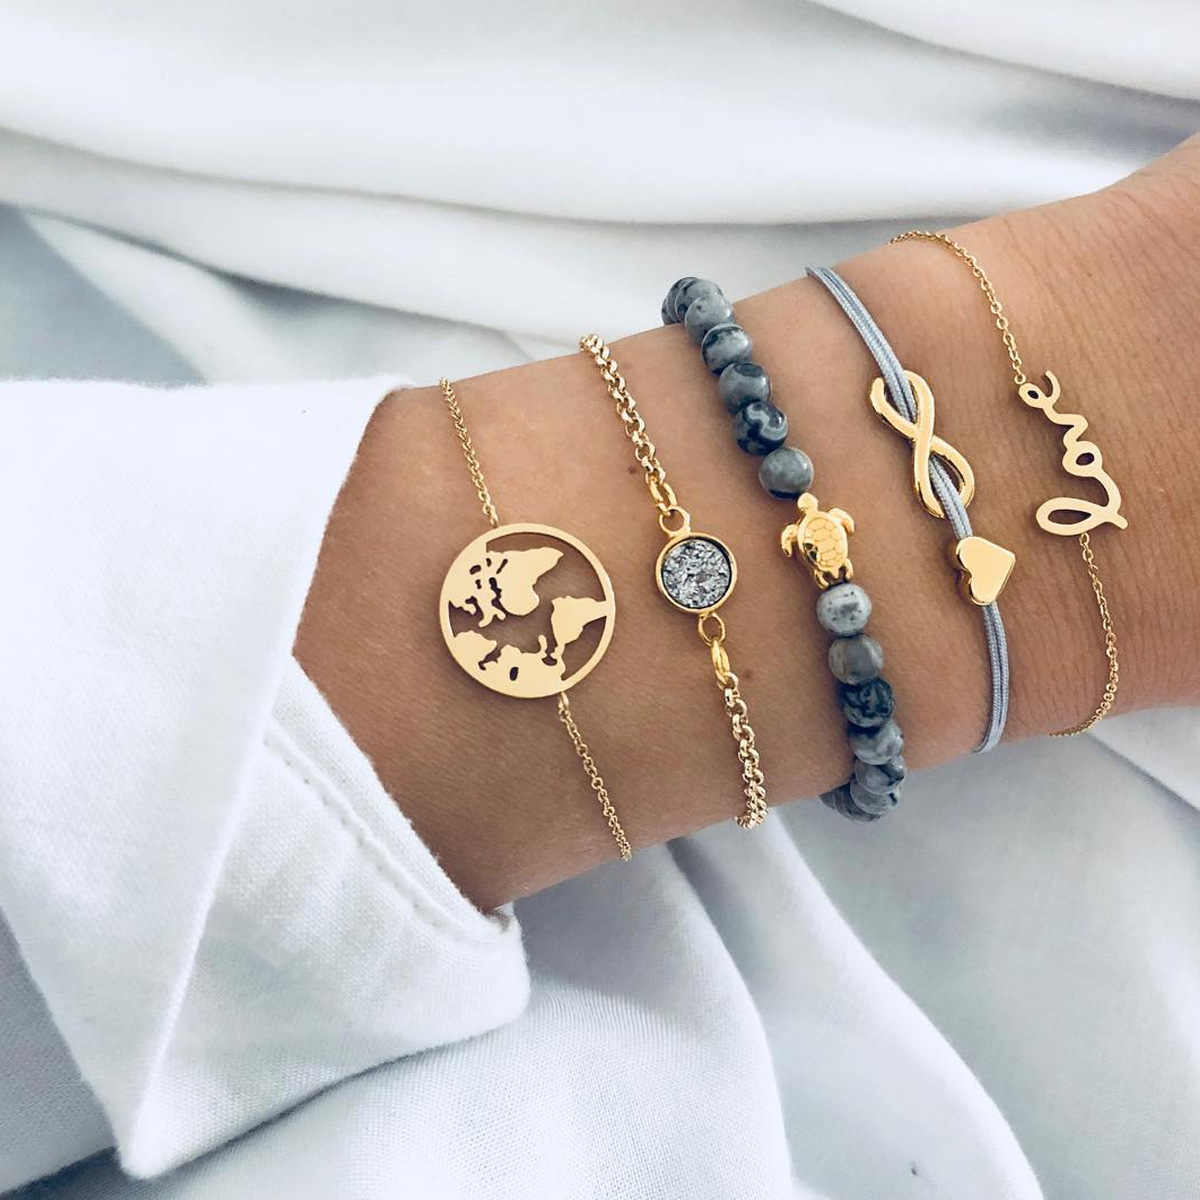 Gray Beads Bracelets Bohemian Creative World Map Turtle Love Heart Infinity Charm Bracelets Set Fashion Jewelry drop shipping